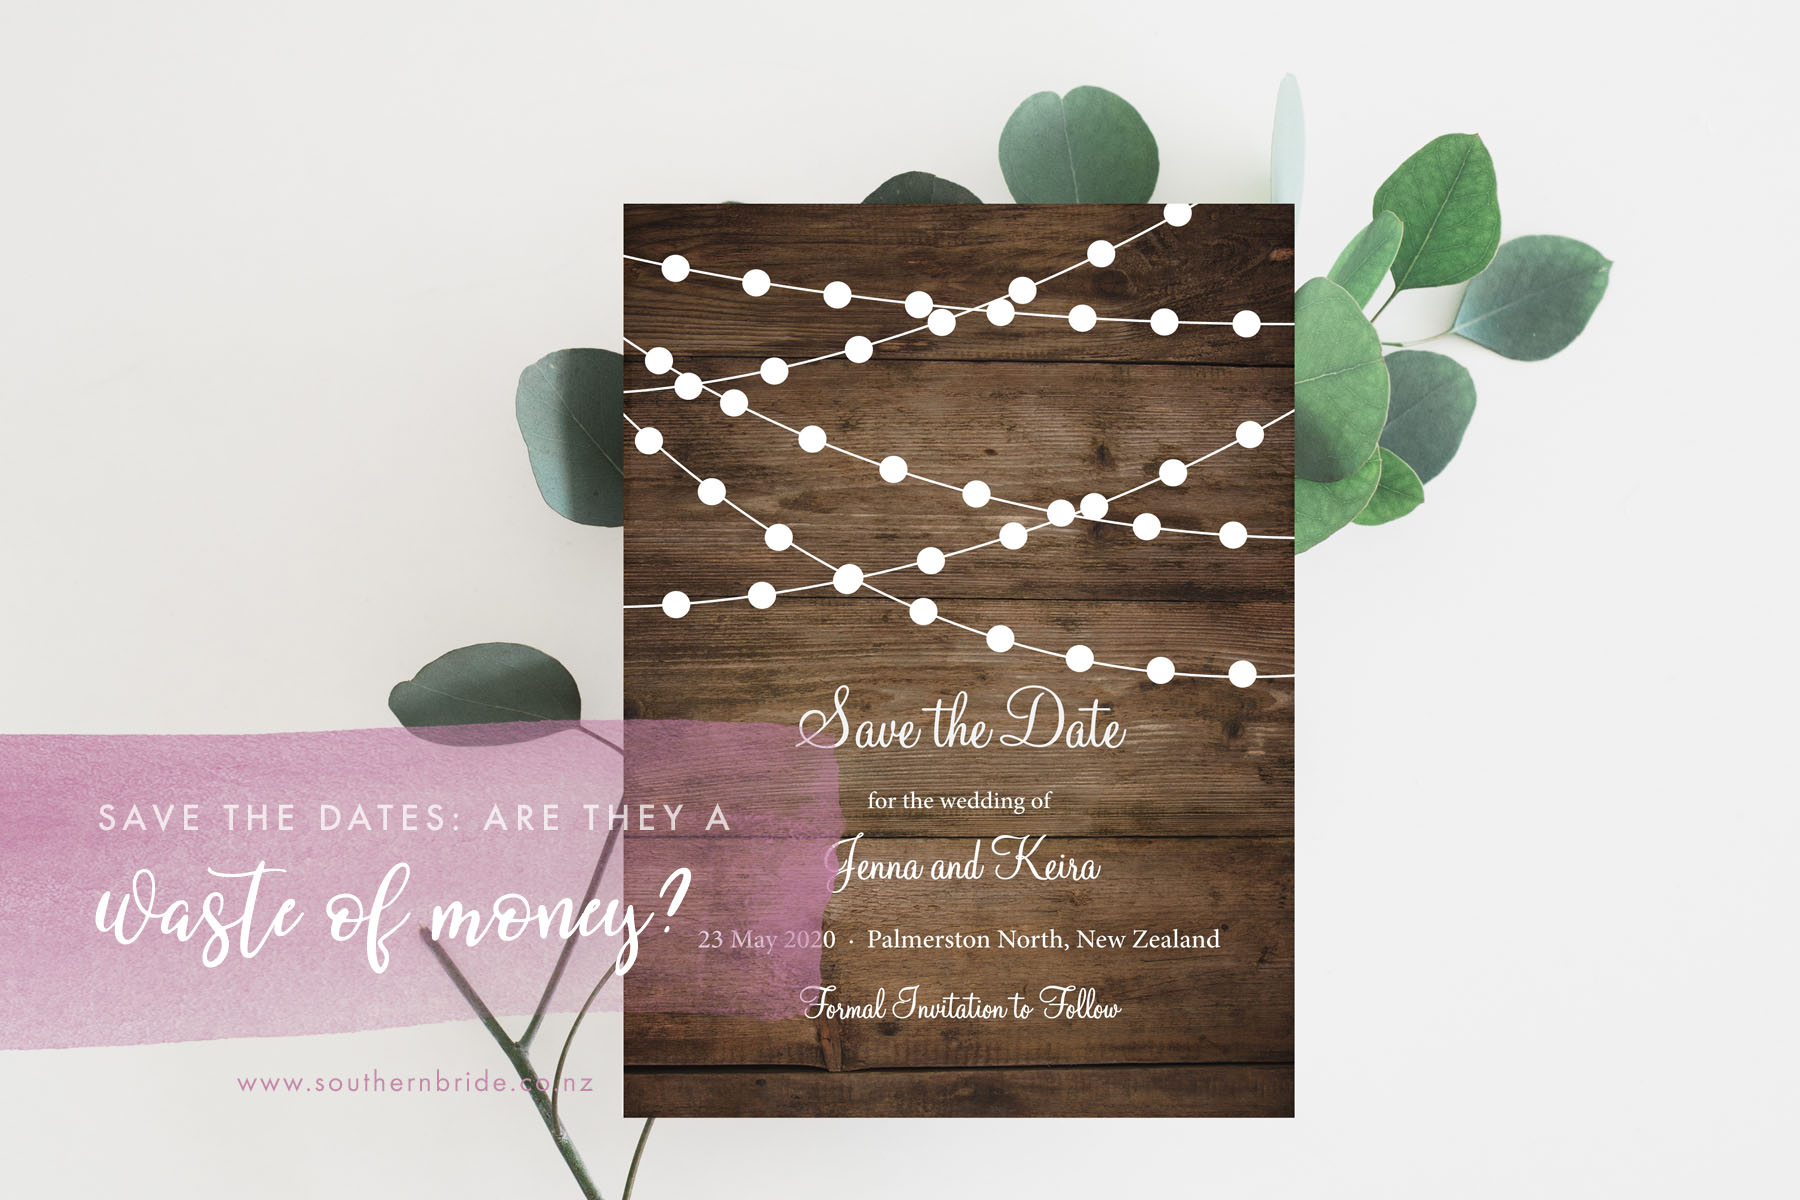 Save The Dates A Waste Of Money Or A Must Have Southern Bride